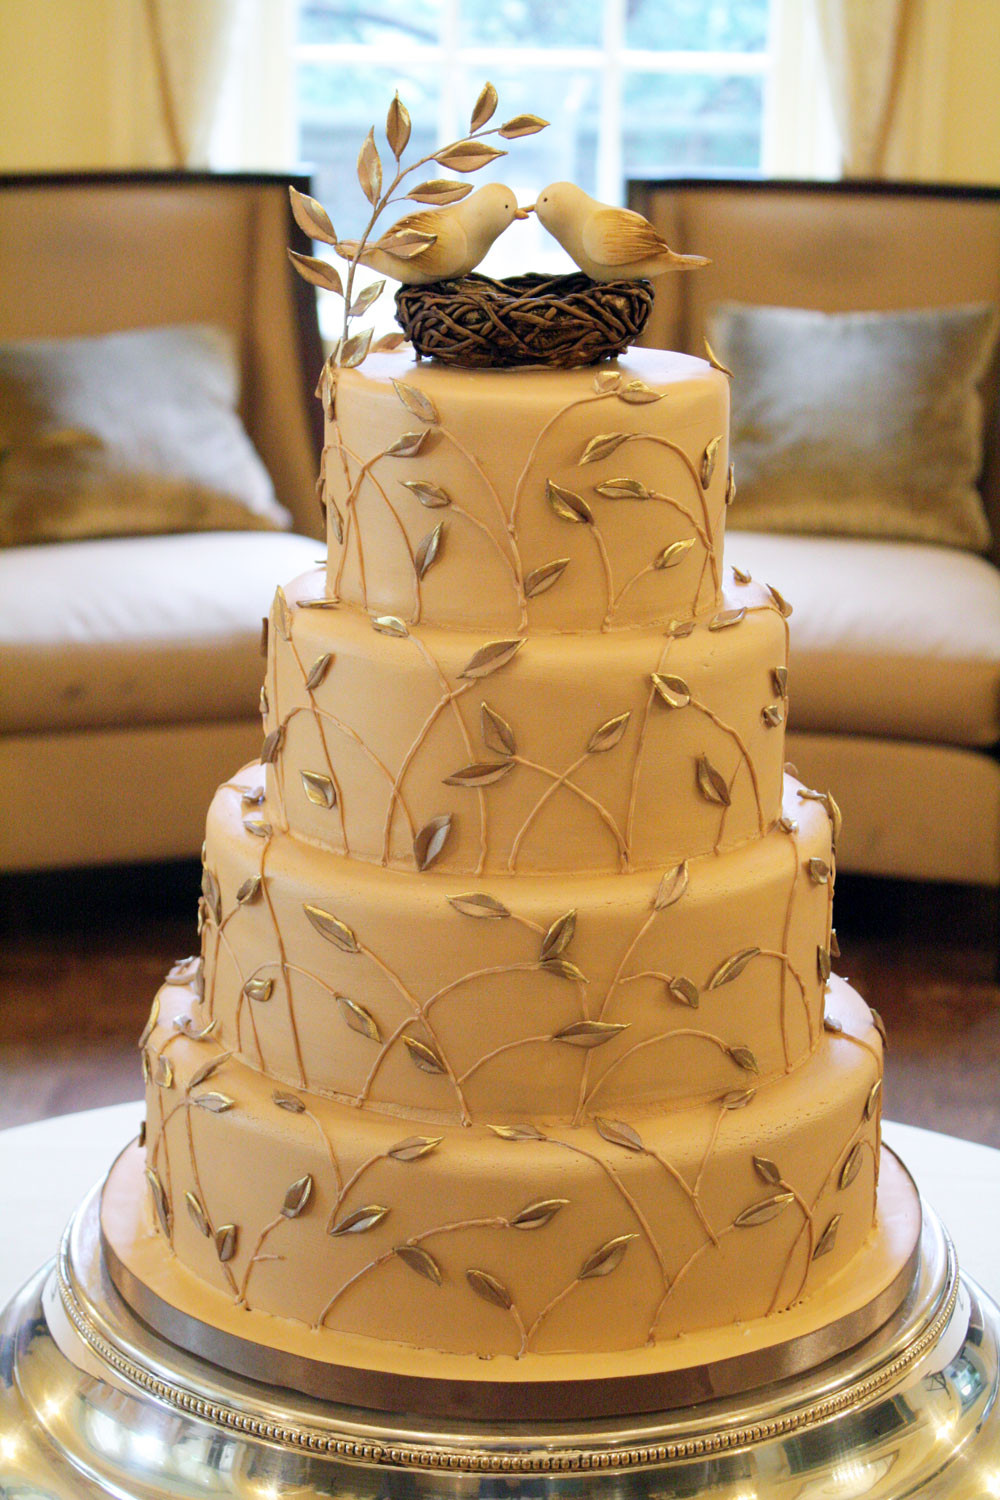 Tops Of Wedding Cakes  Let Them Eat Cake At Your Wedding Love Birds Top This Cake